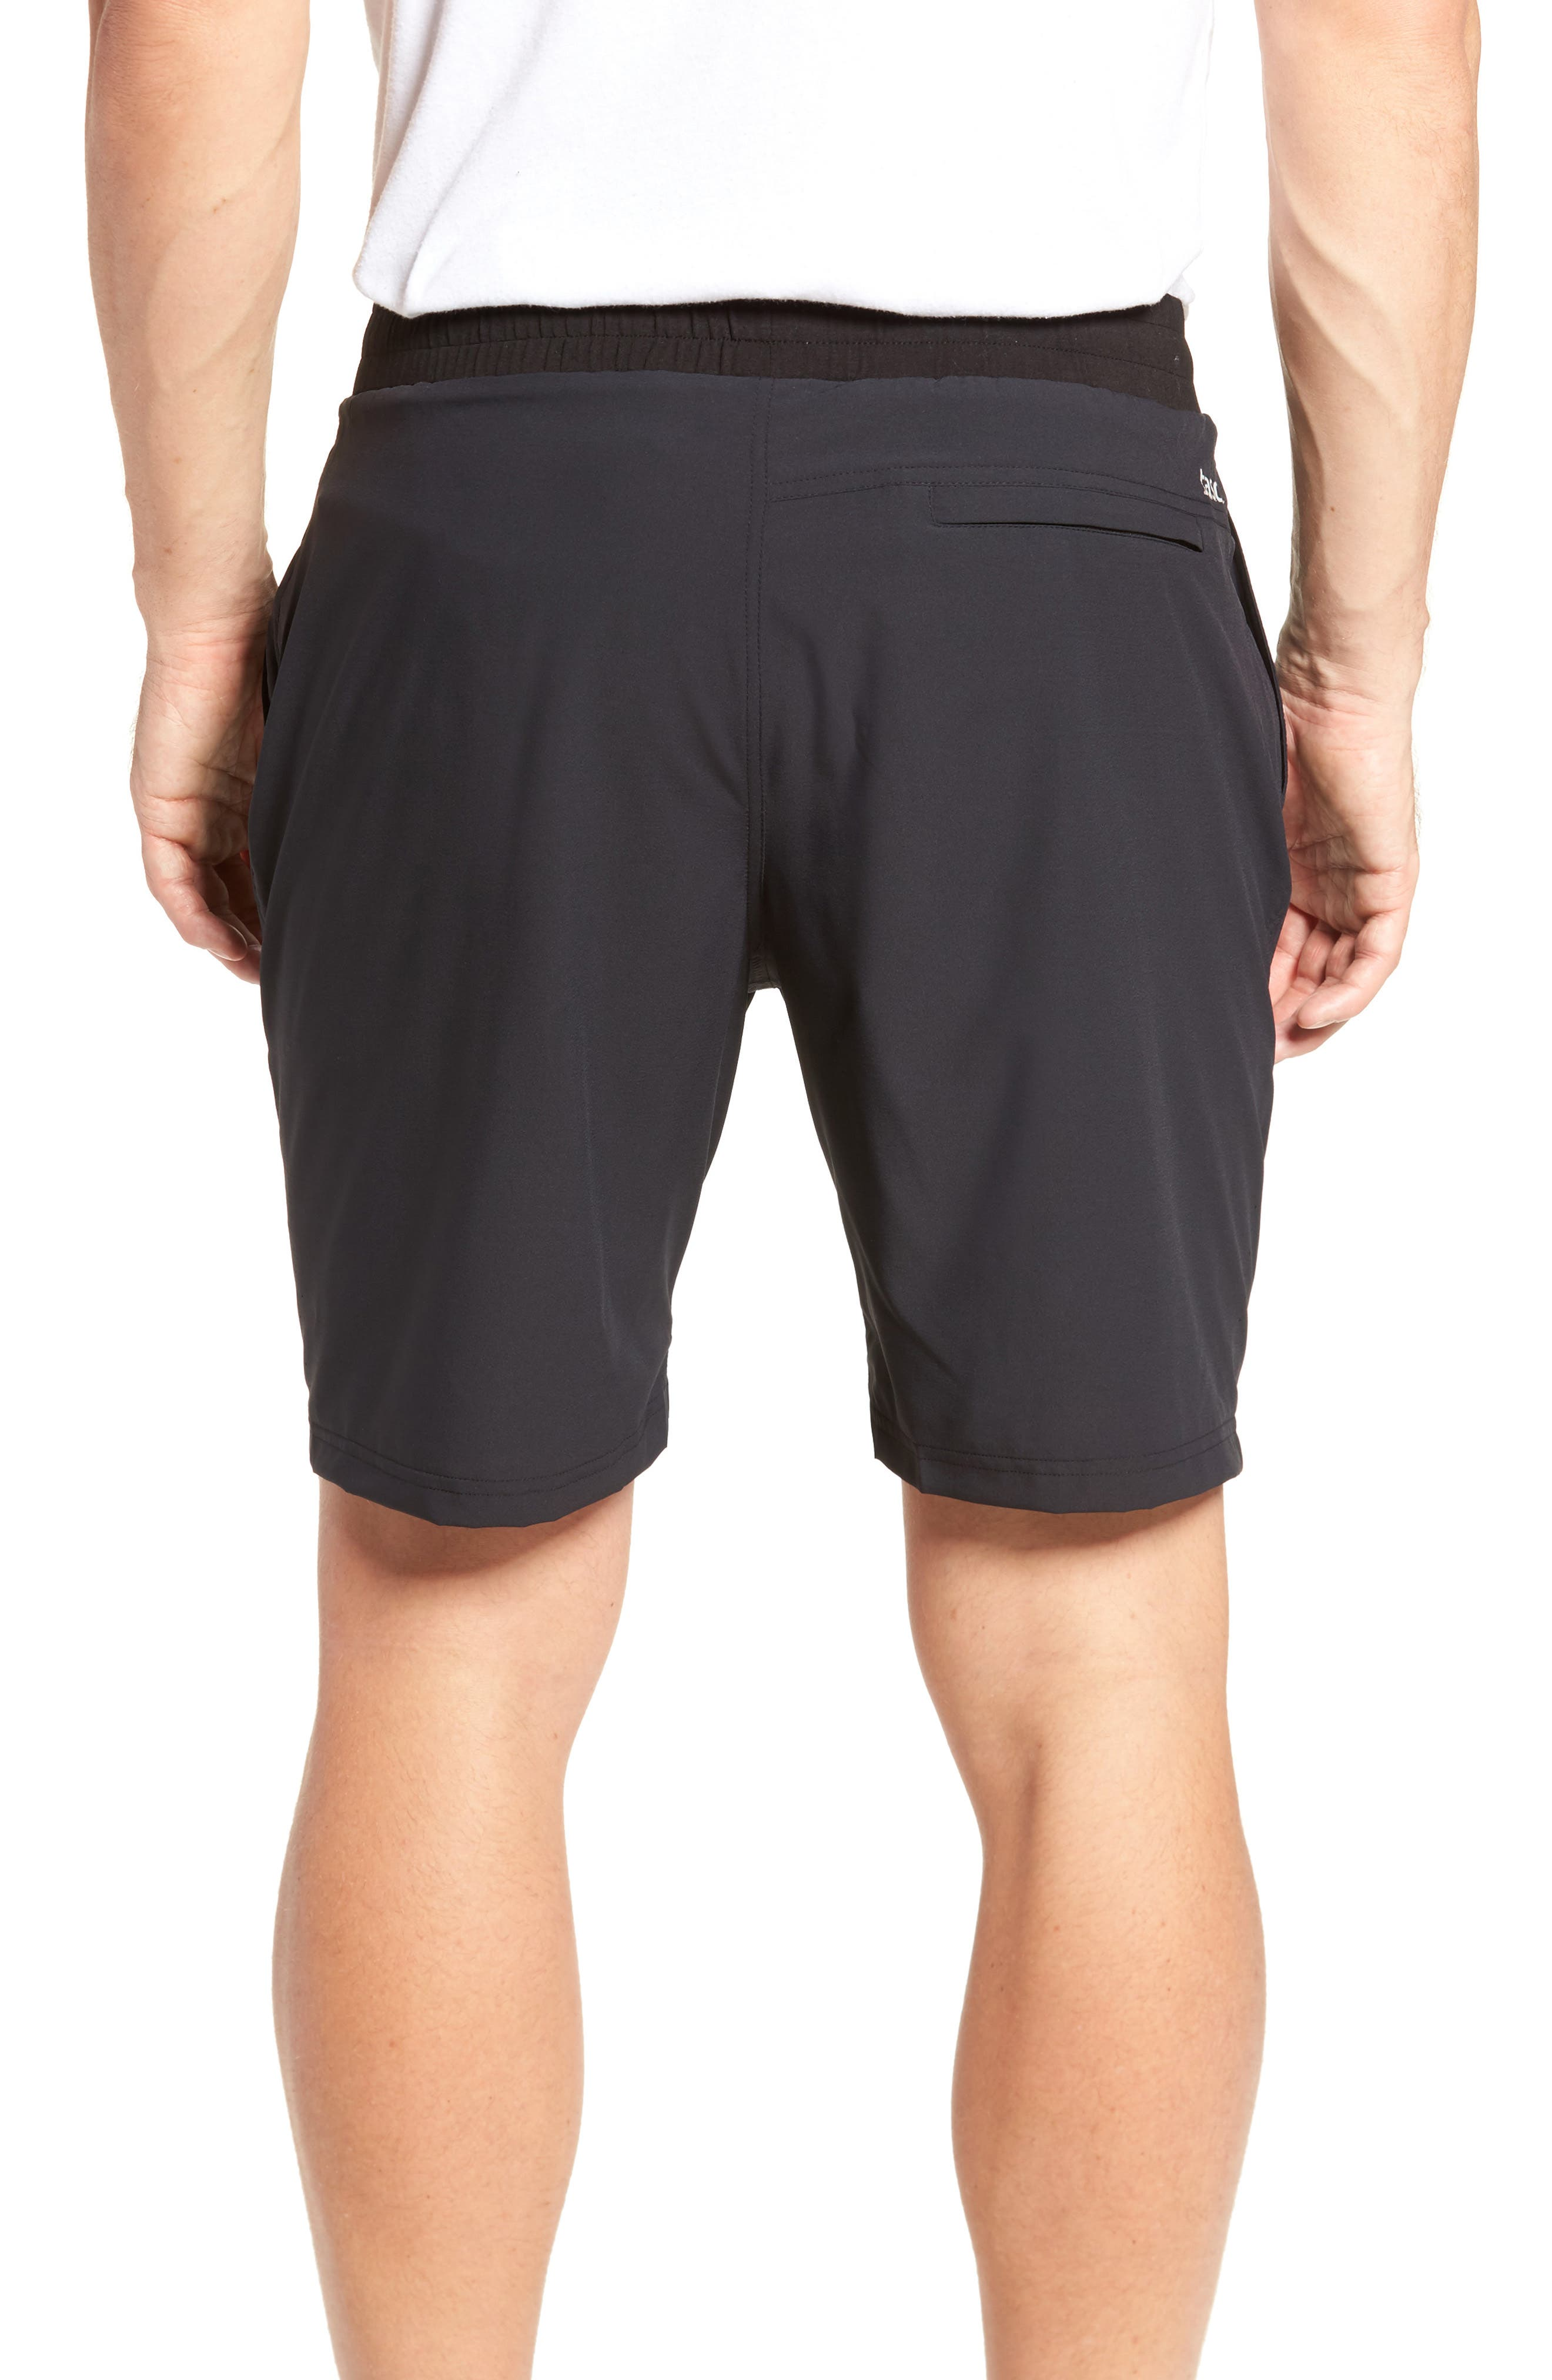 Charge Water Resistant Athletic Shorts,                             Alternate thumbnail 2, color,                             BLACK